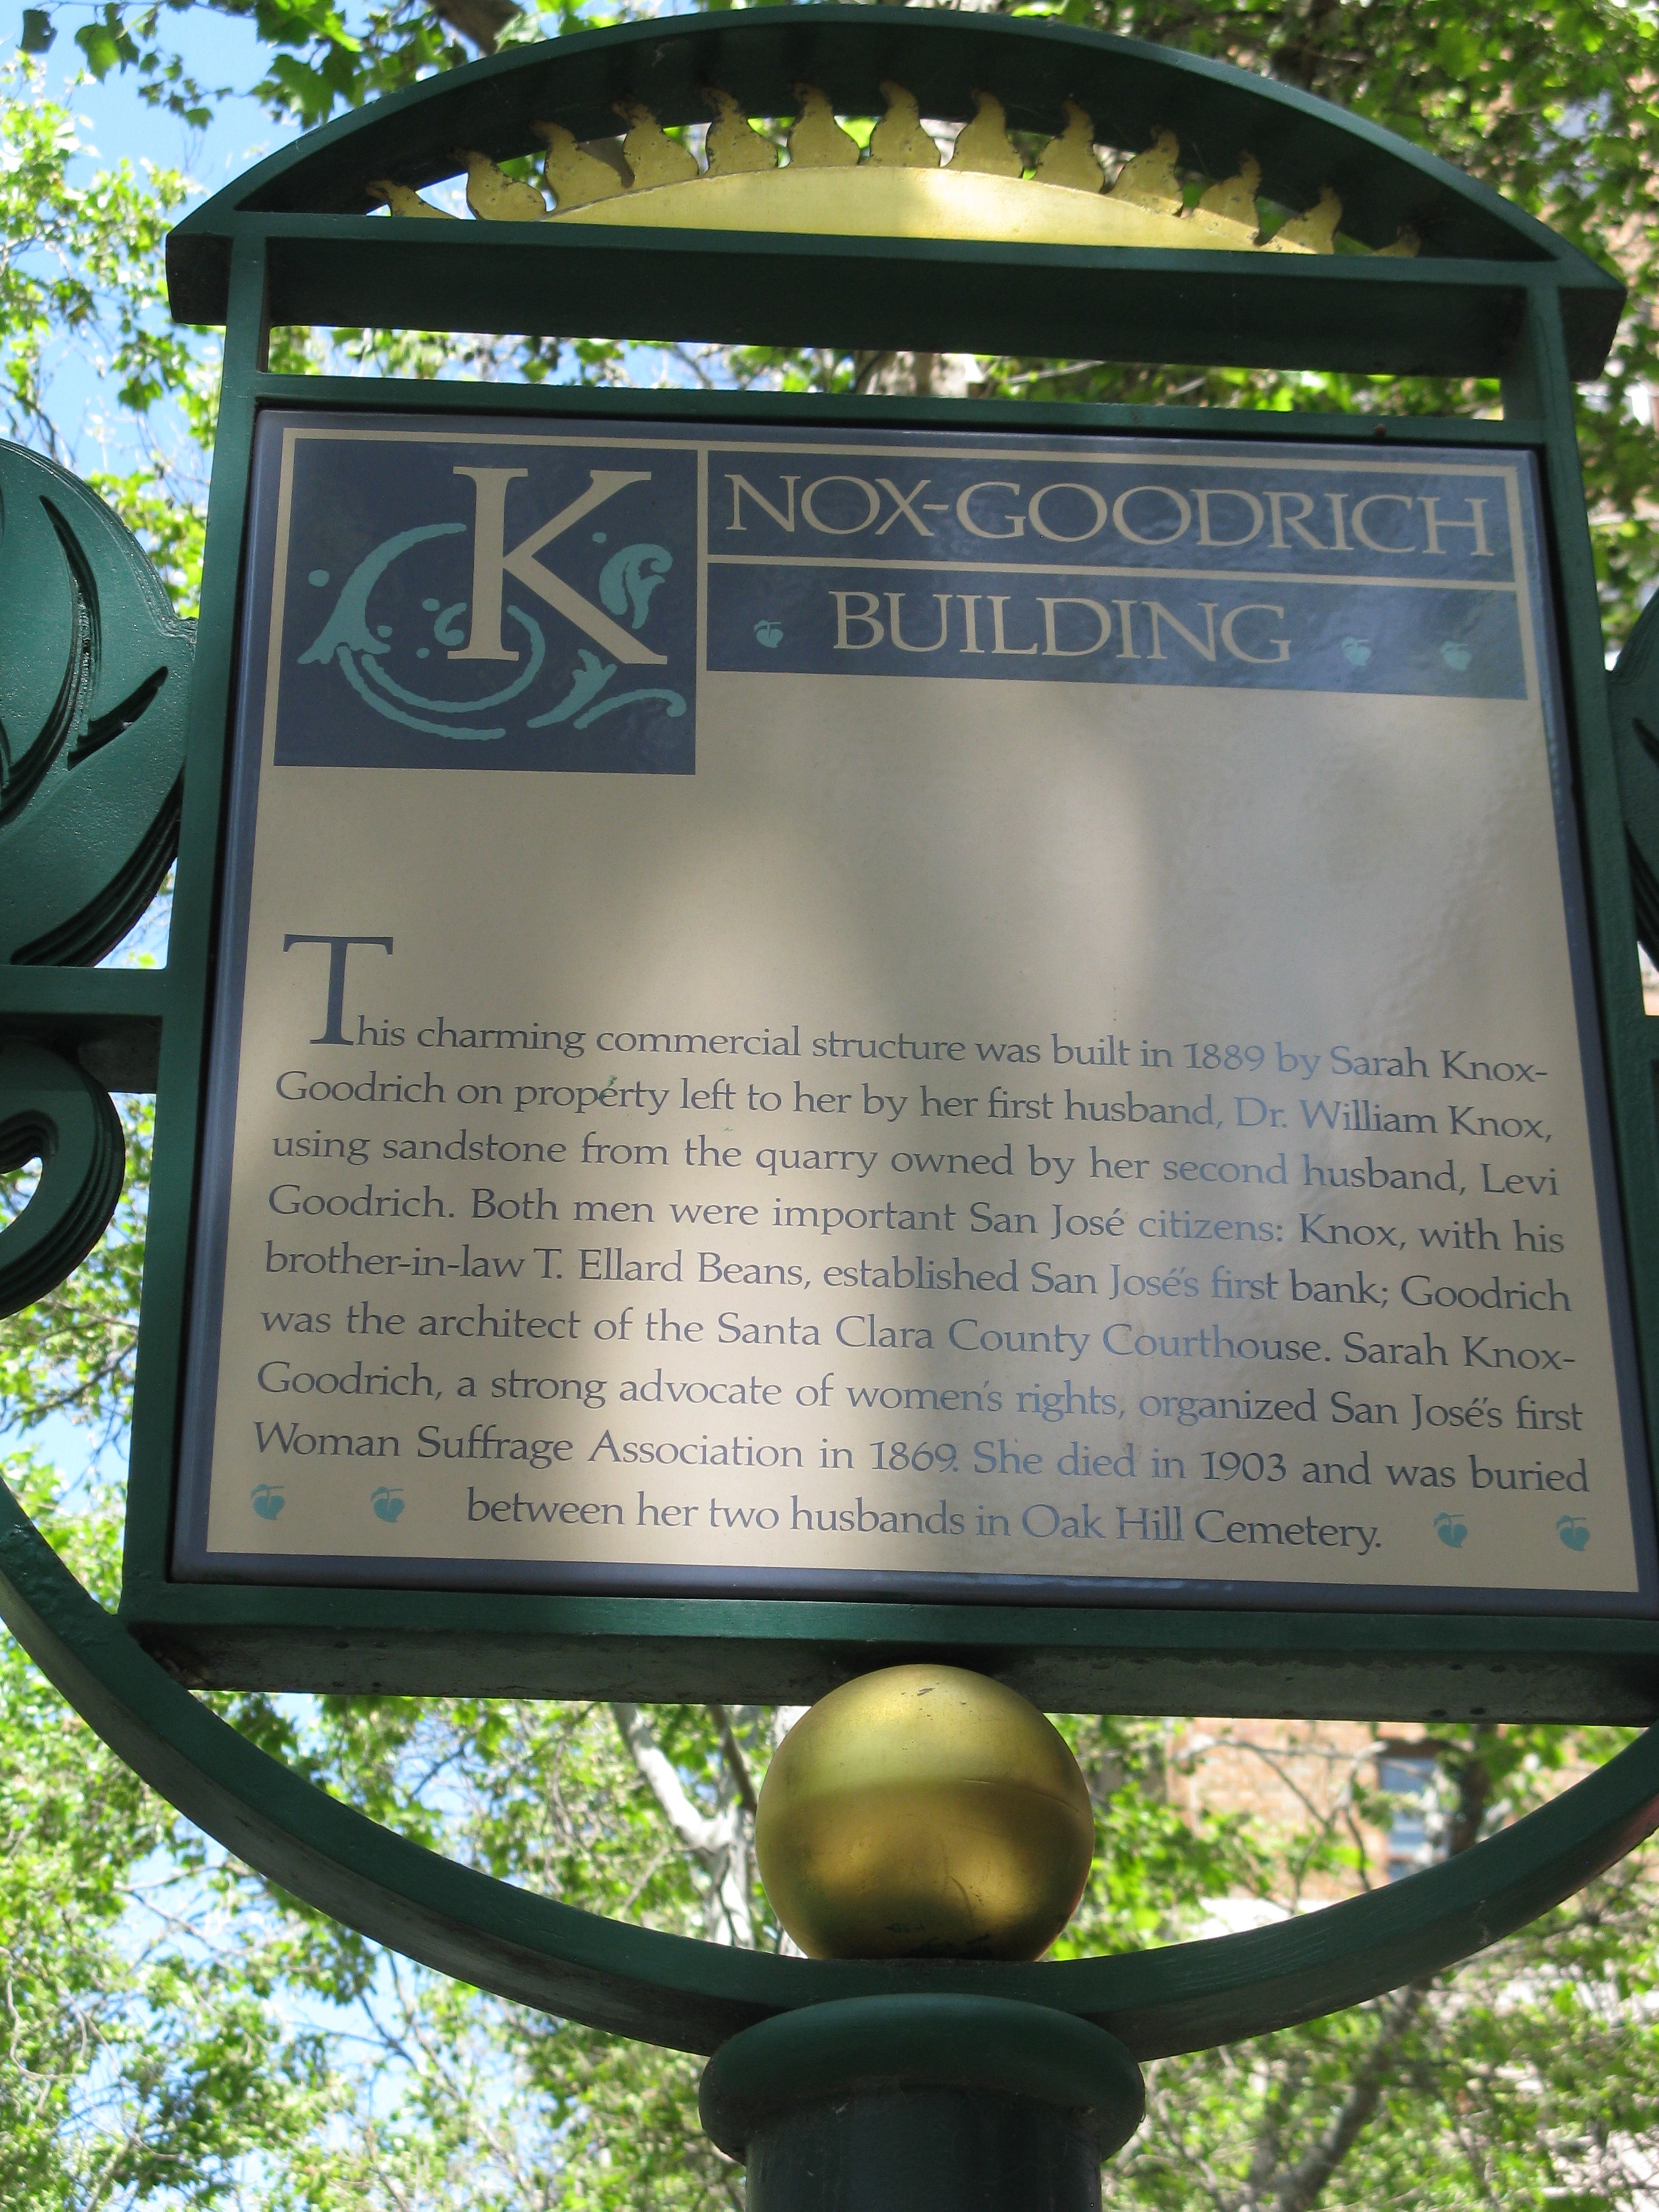 Knox-Goodrich Building Marker